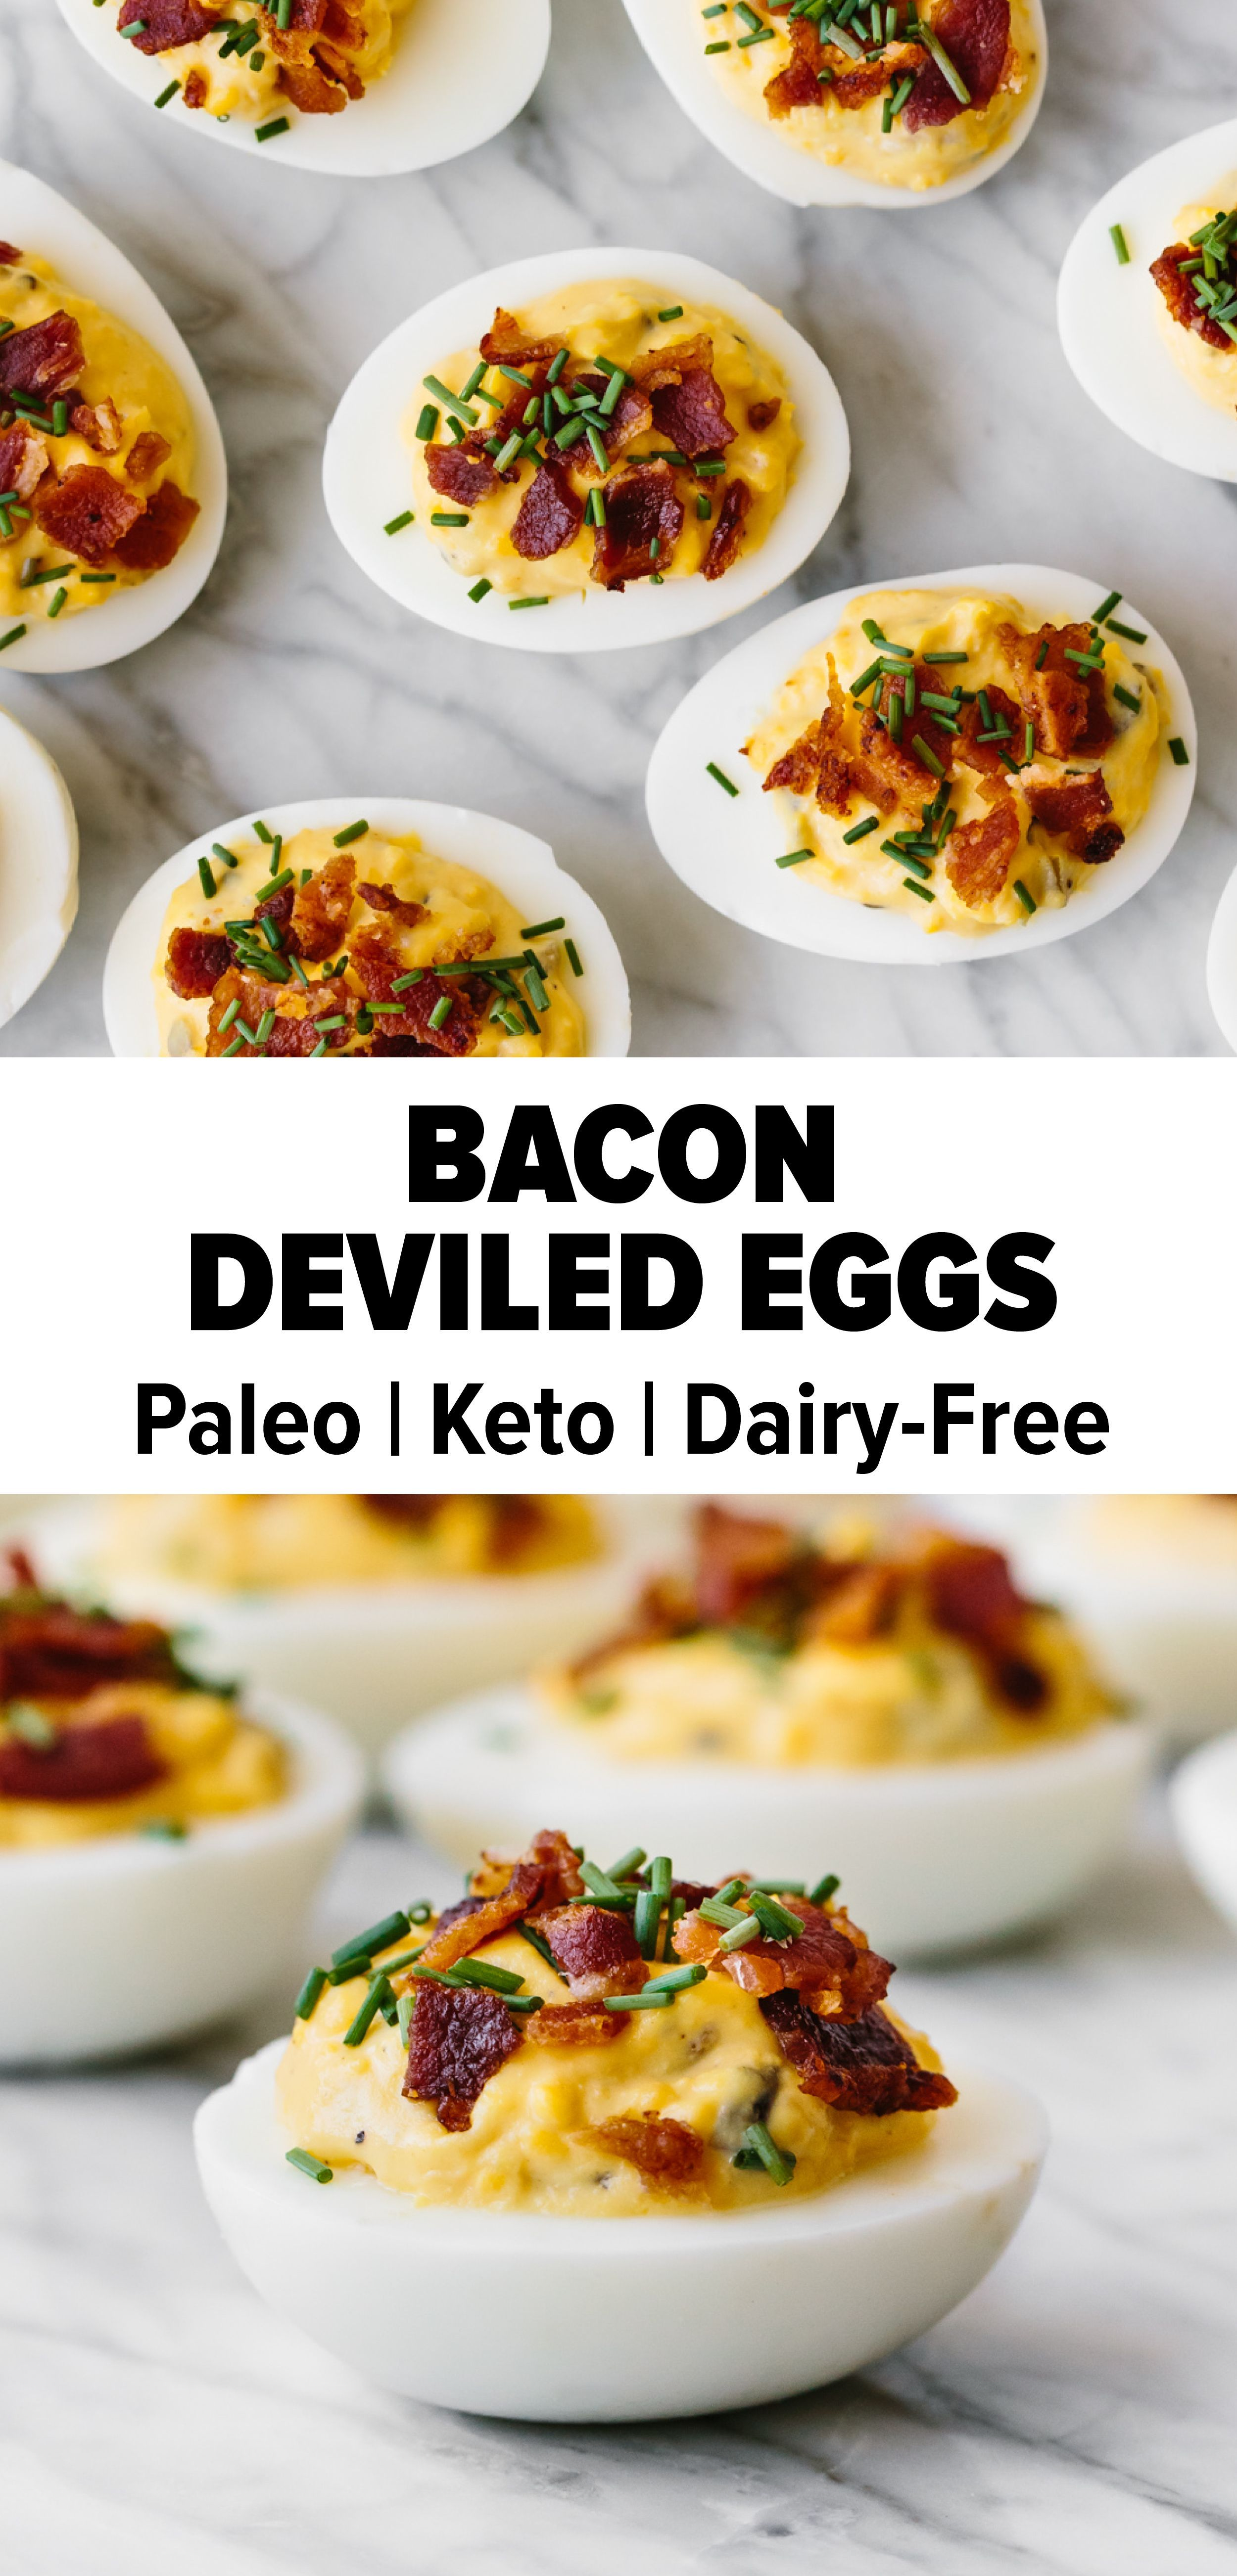 Bacon Deviled Eggs Bacon deviled eggs are a tasty spin on deviled eggs and topped with a generous a